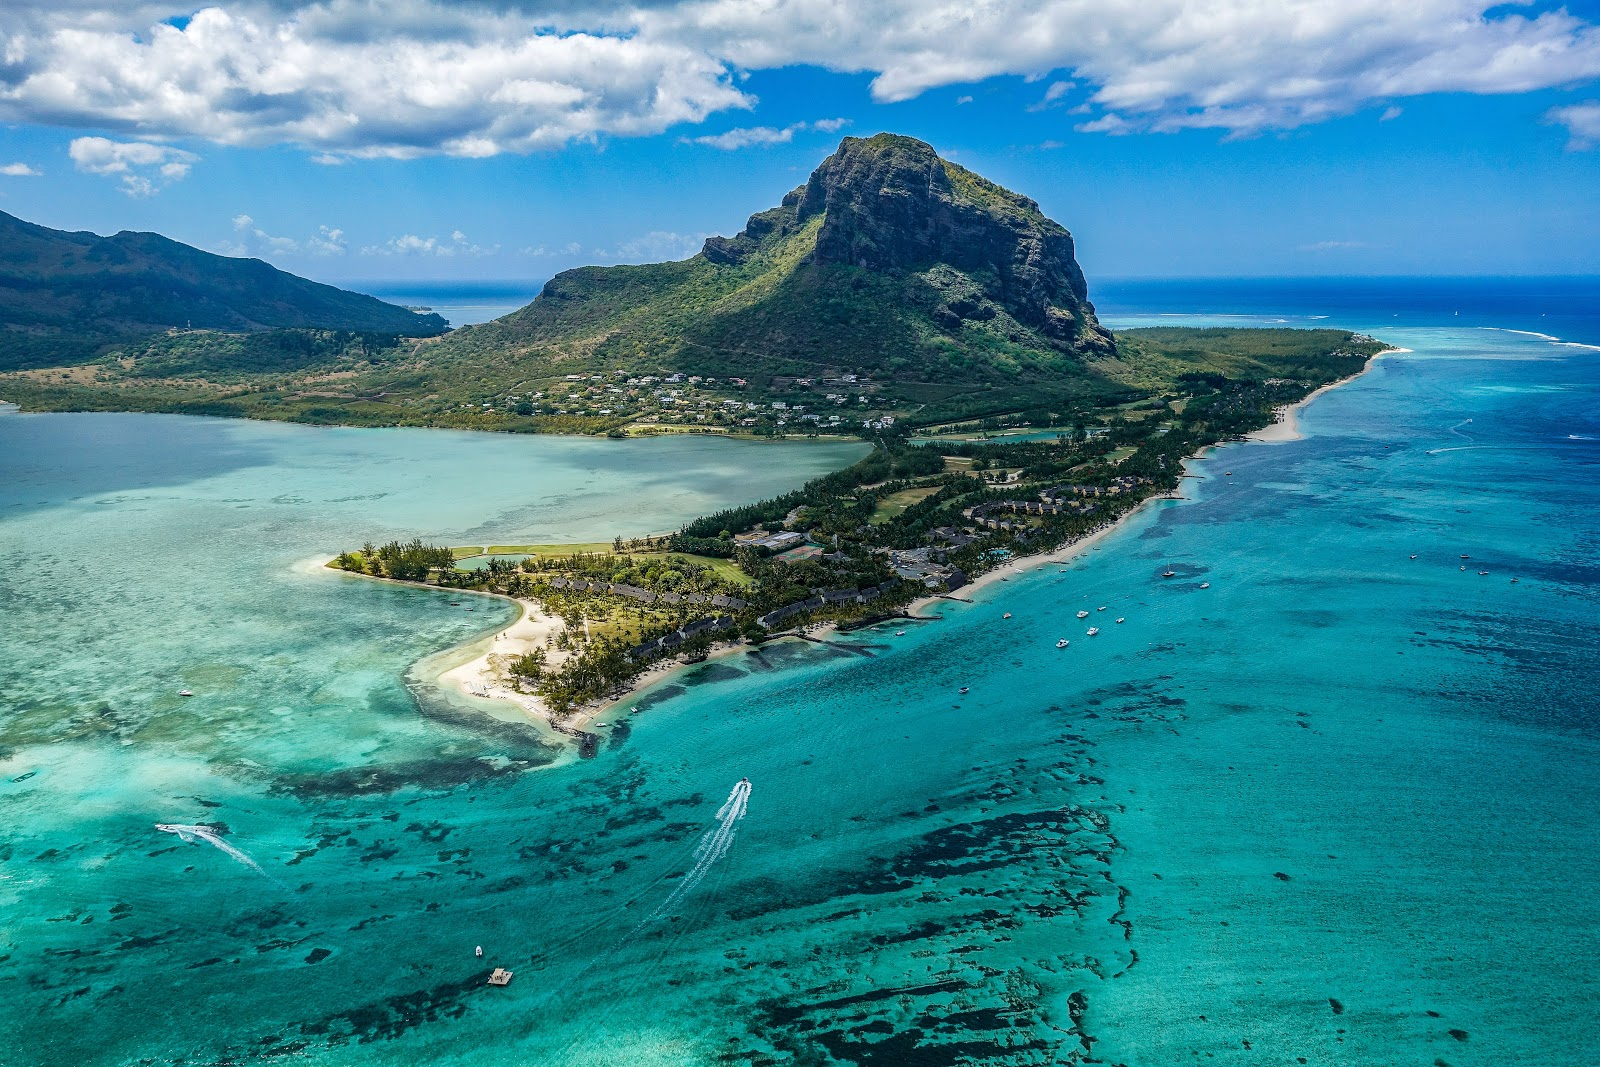 a photo of one of Mauritius's islands